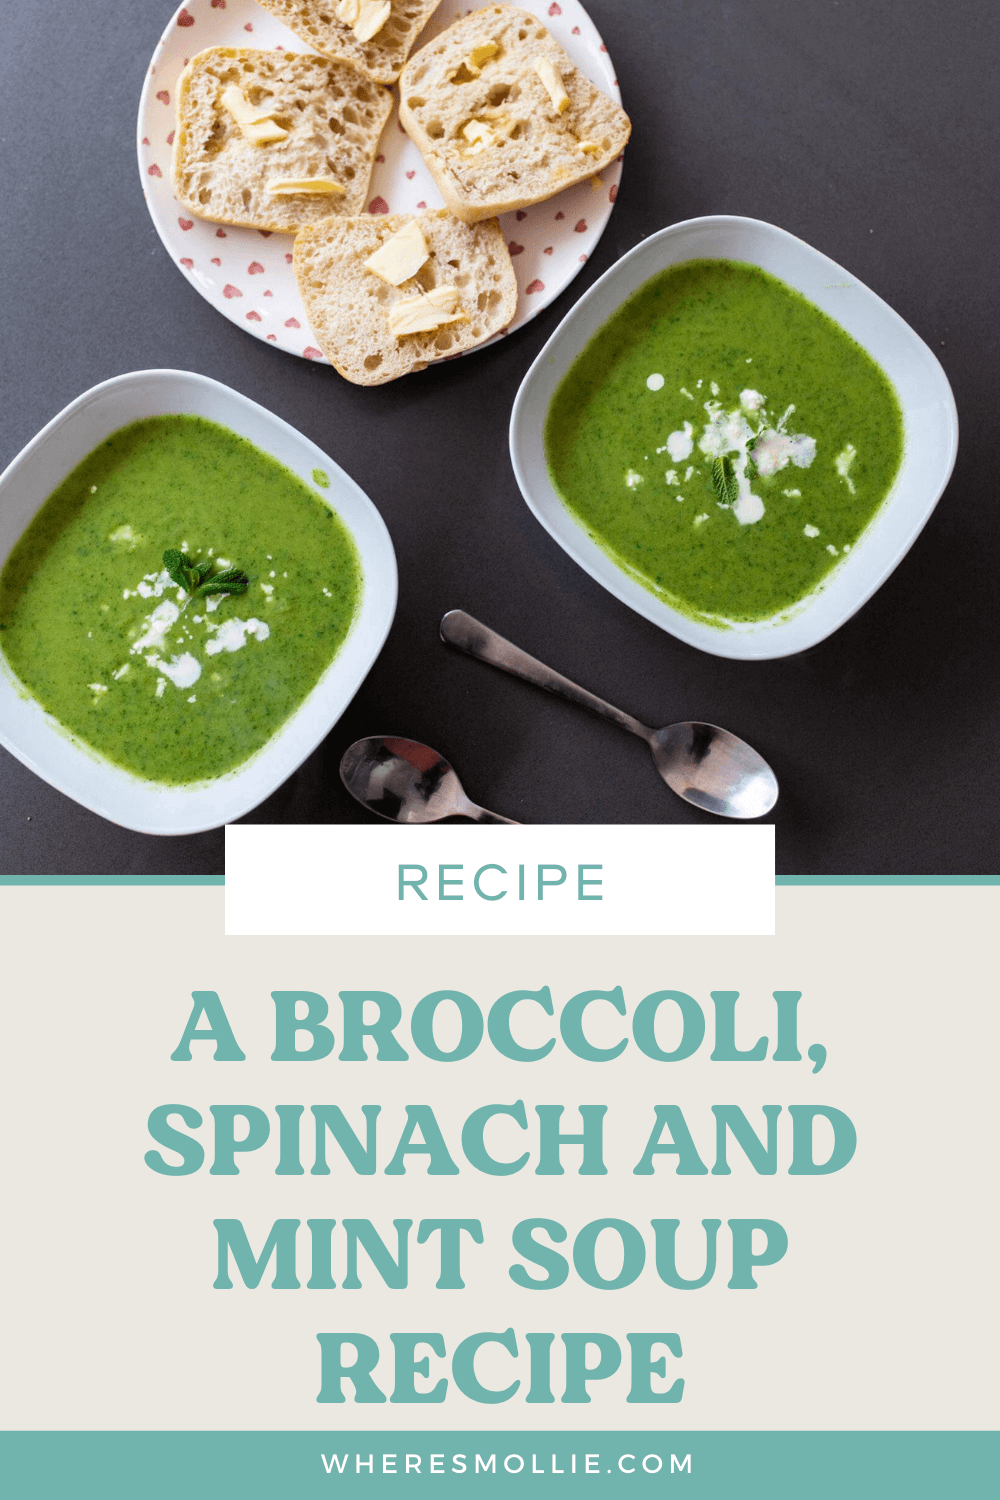 Recipe: Broccoli, spinach and mint soup